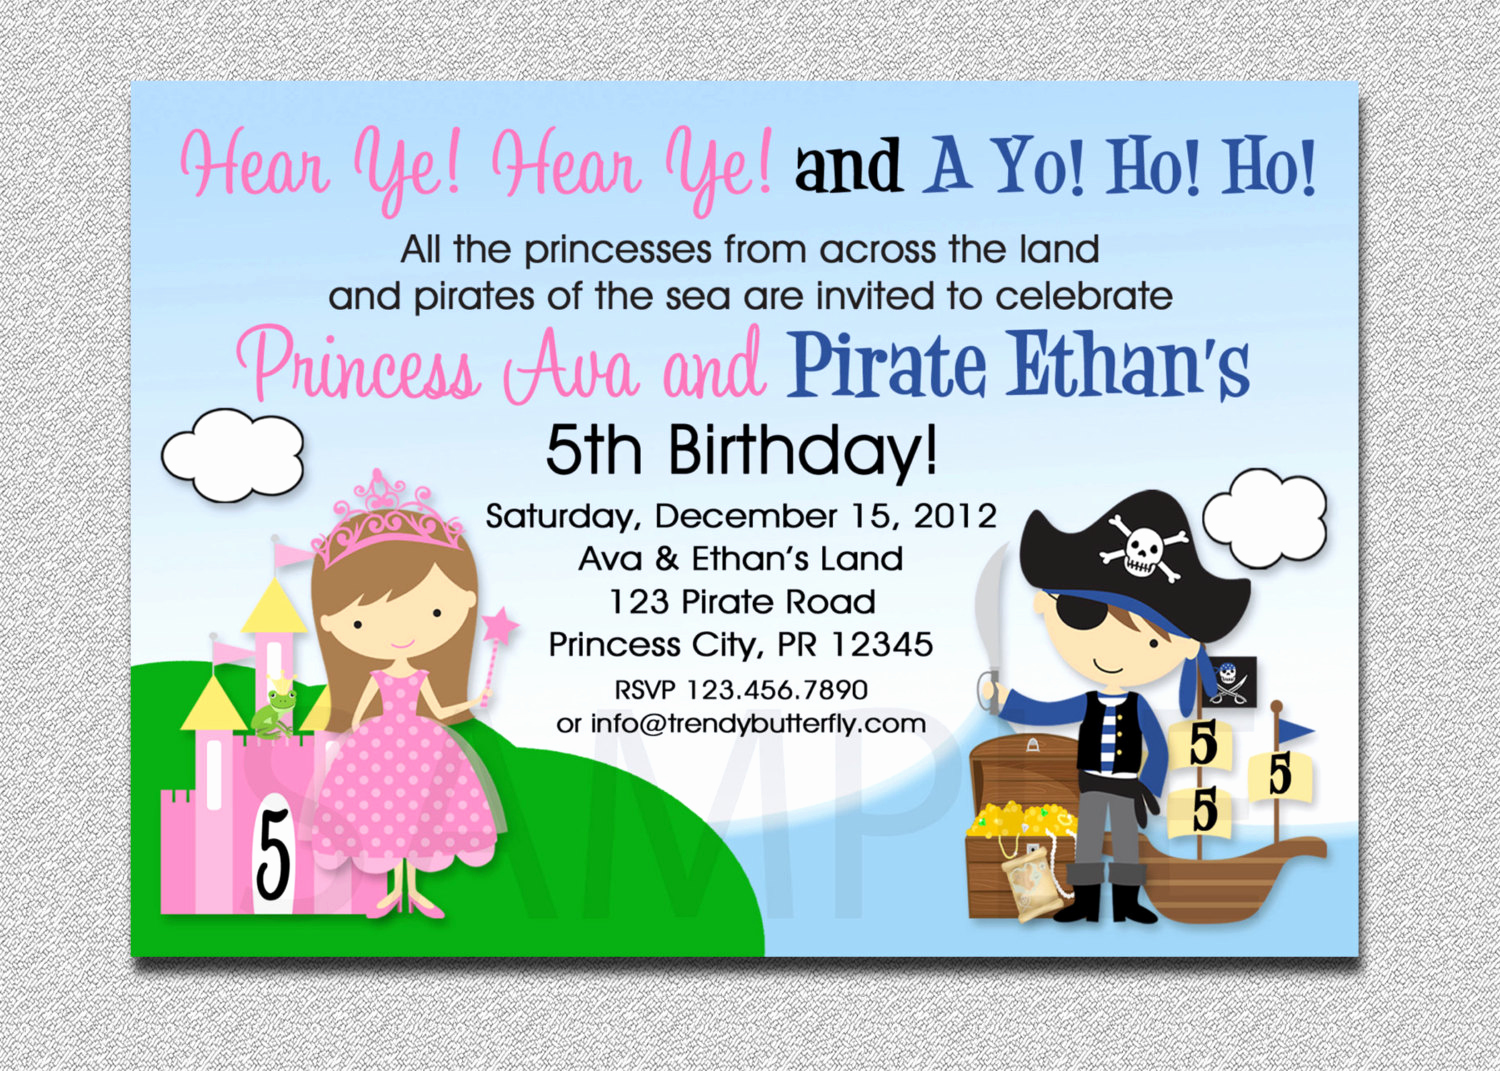 Princess and Pirate Invitation Luxury Princess Pirate Birthday Invitation Princess and Pirate Party